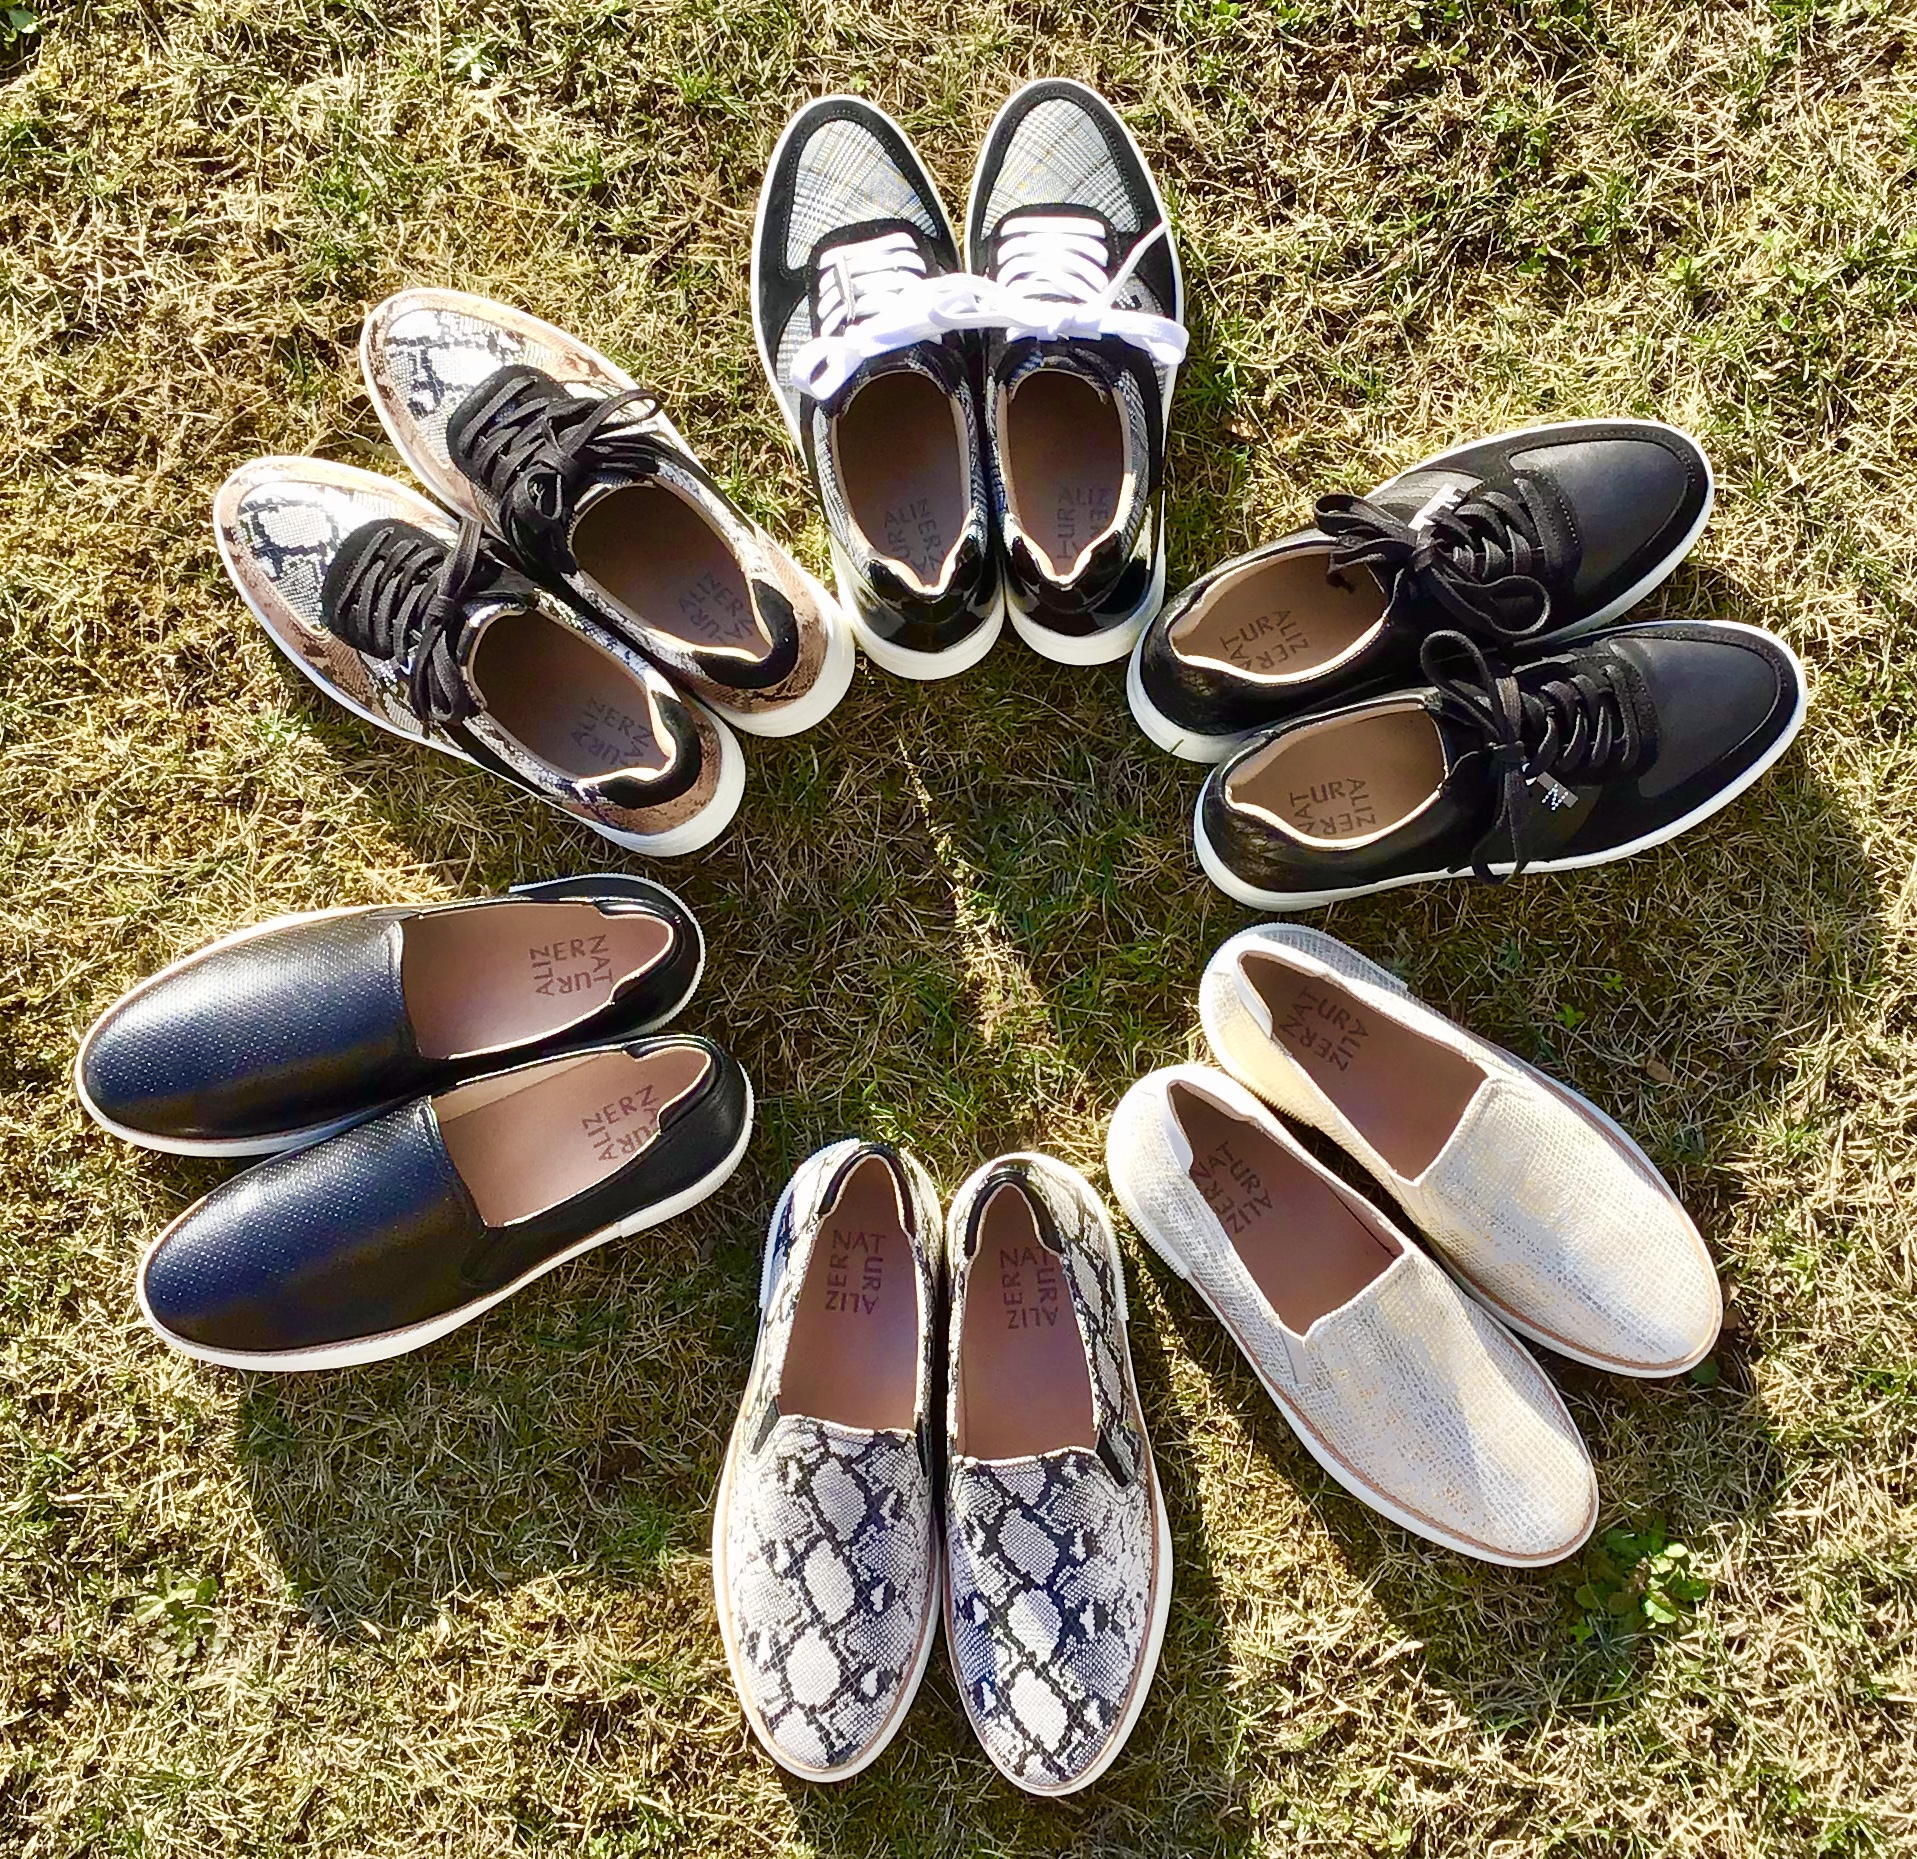 REGAL SHOES 毎日履きたいスニーカー➂